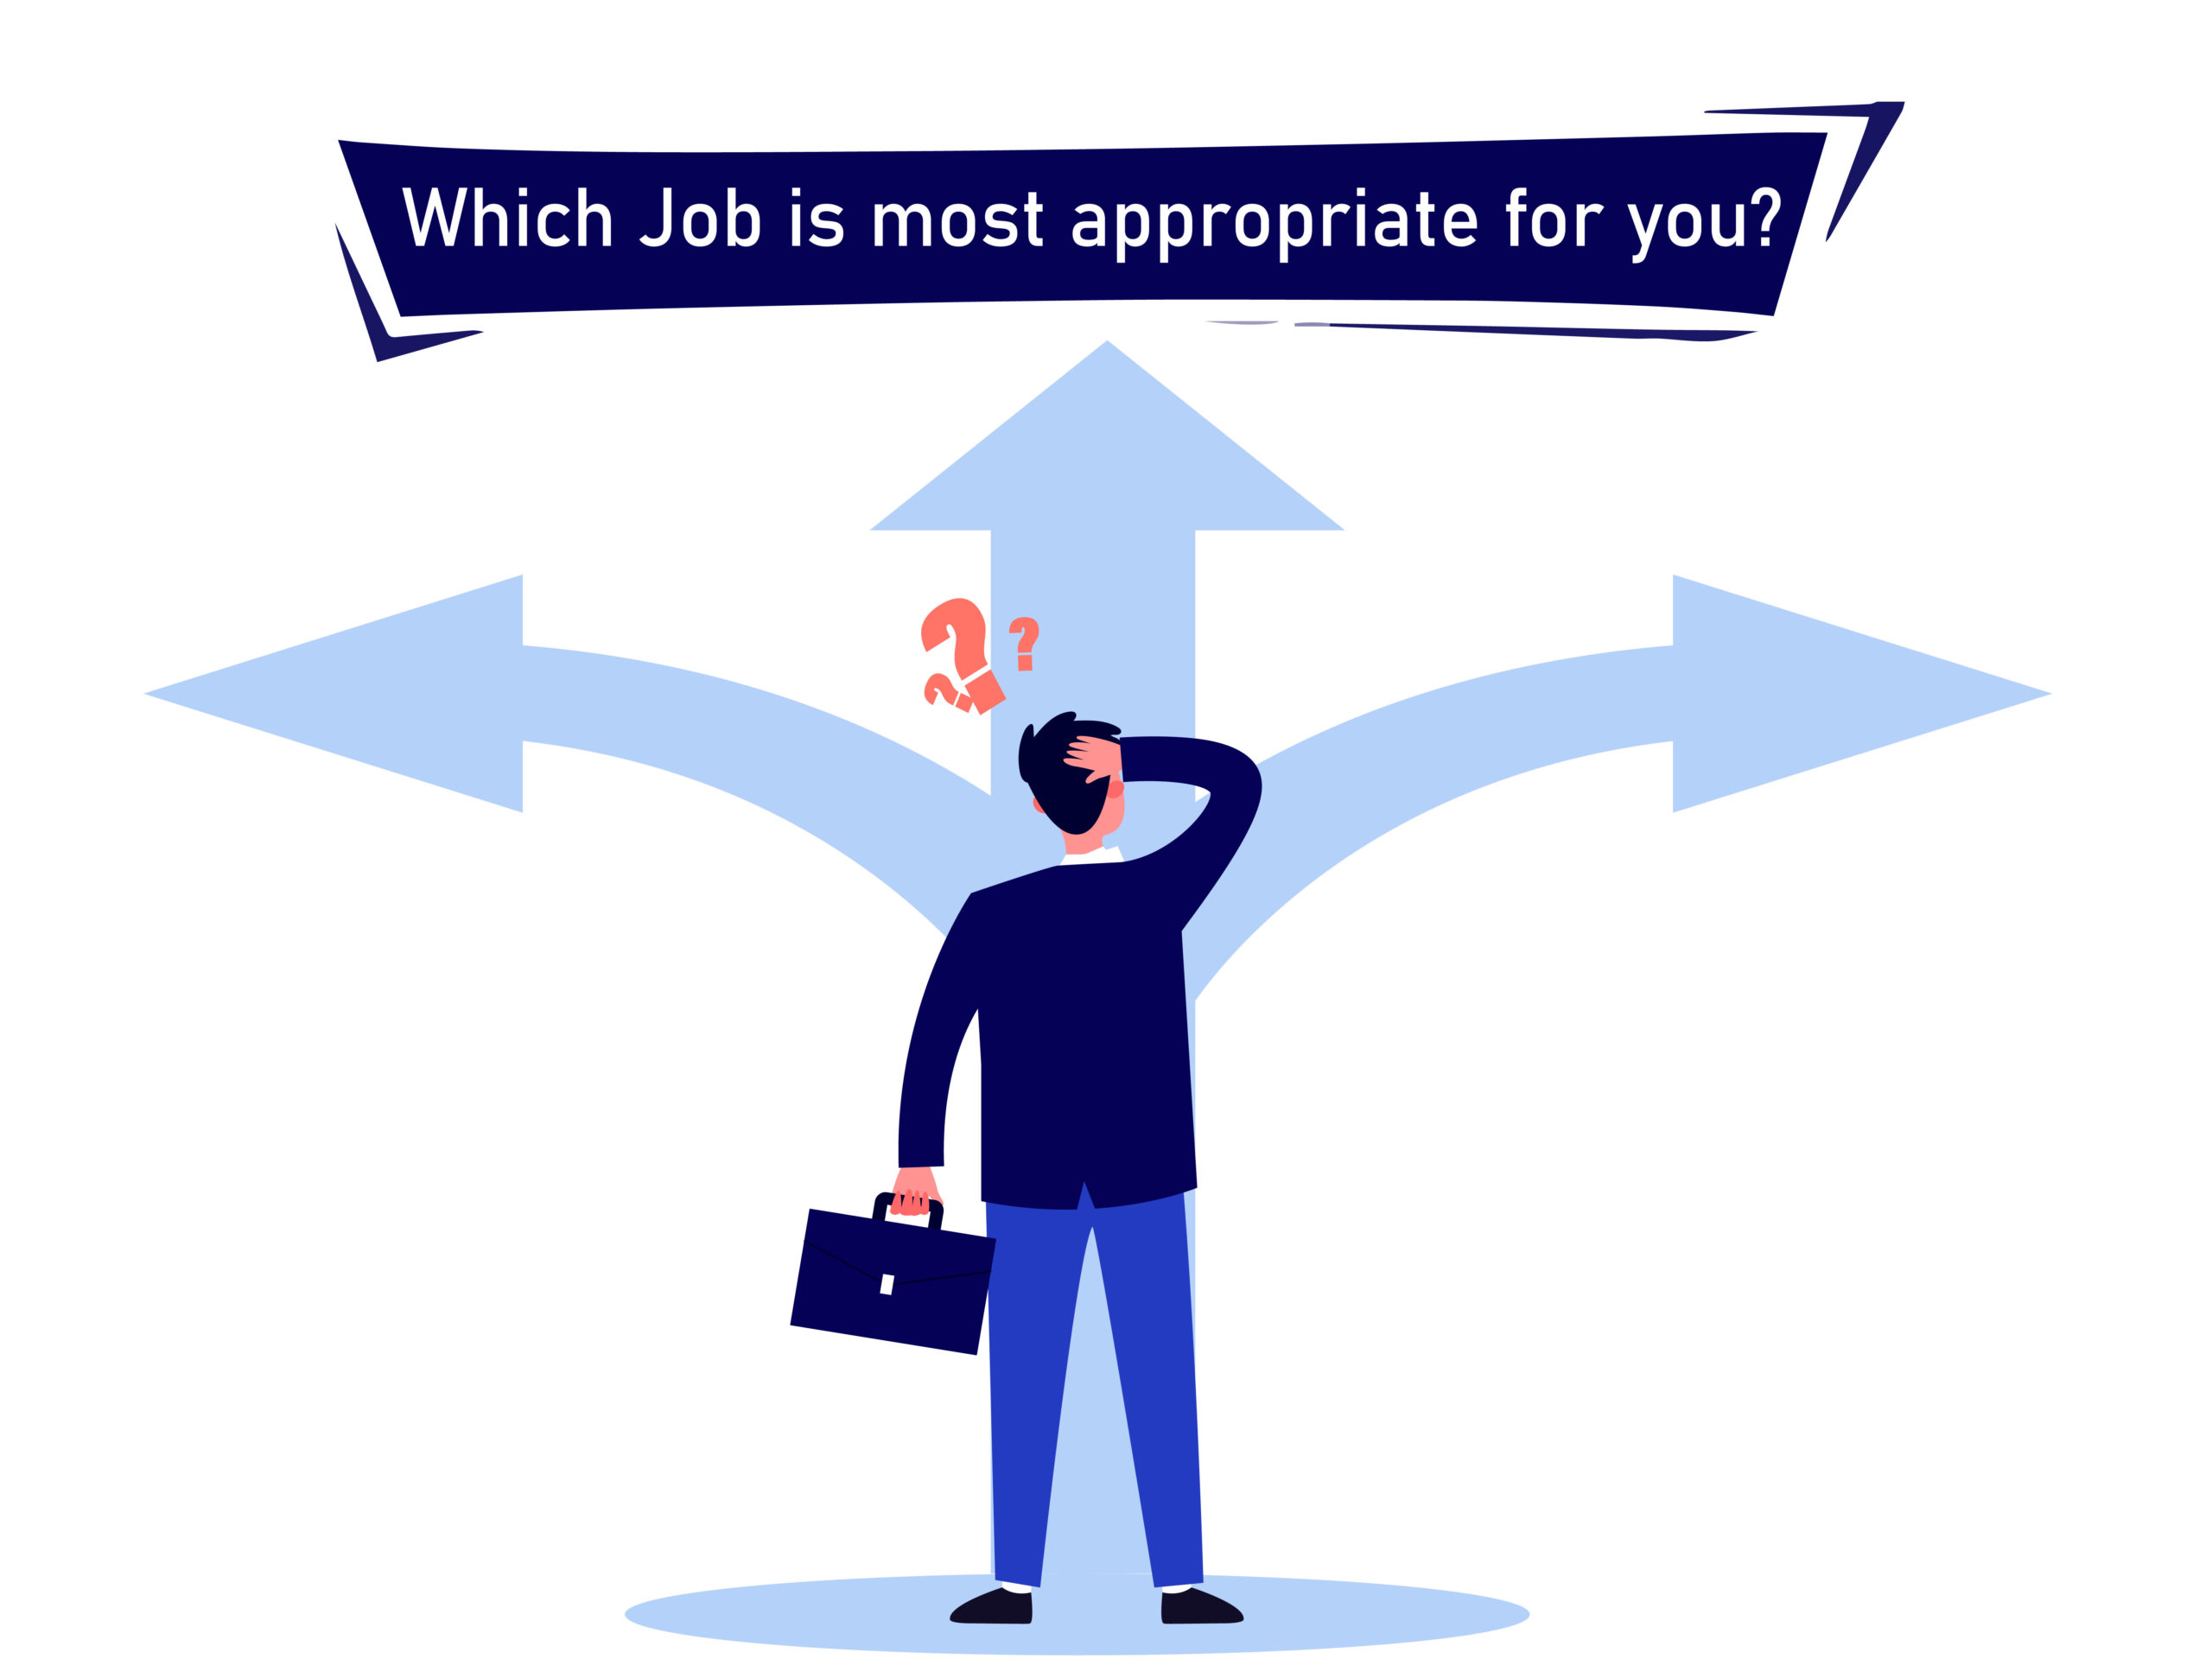 Tips on how to find the most appropriate job role